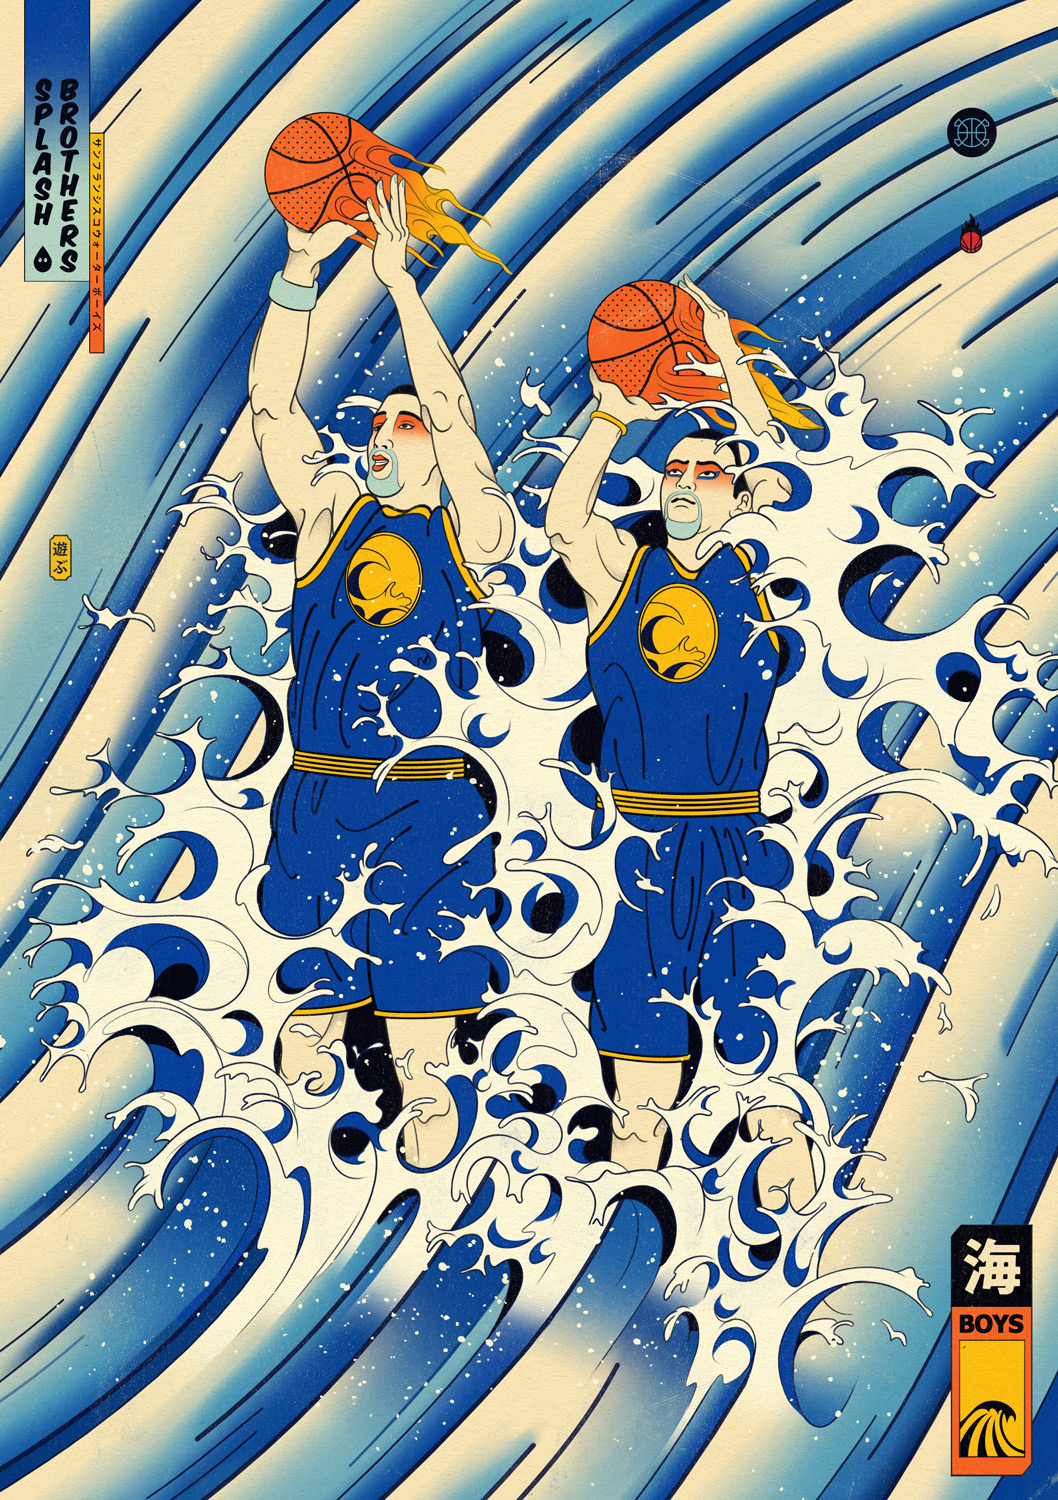 Edo Ball NBA Basketball Art - Stephen Curry and Klay Thompson.